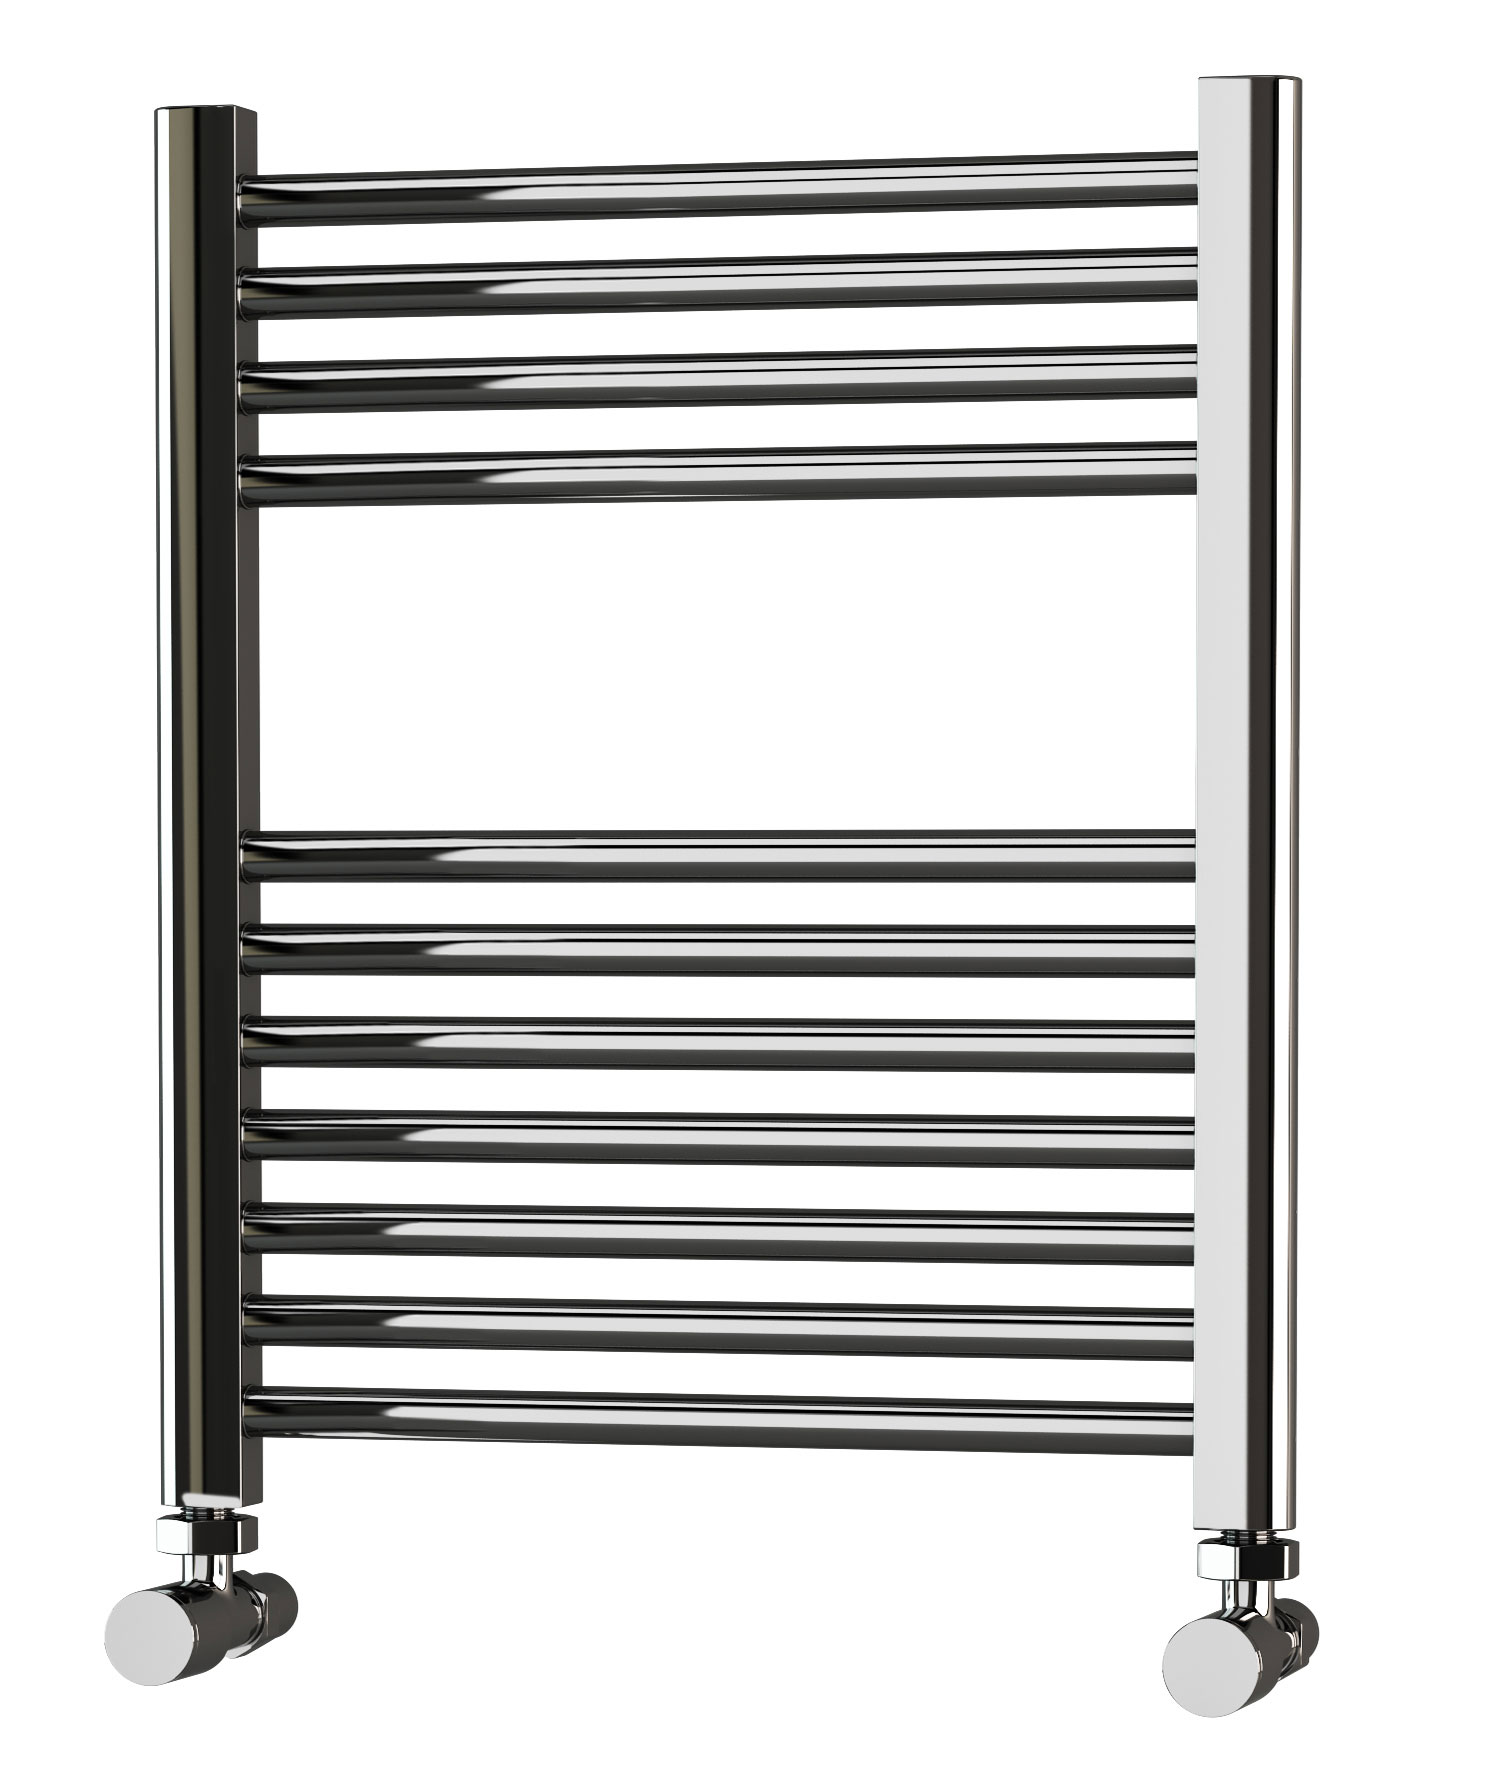 600mm Wide 800mm High Straight Chrome Heated Towel Rail: Eastgate Straight Chrome Heated Towel Rail 600mm High X